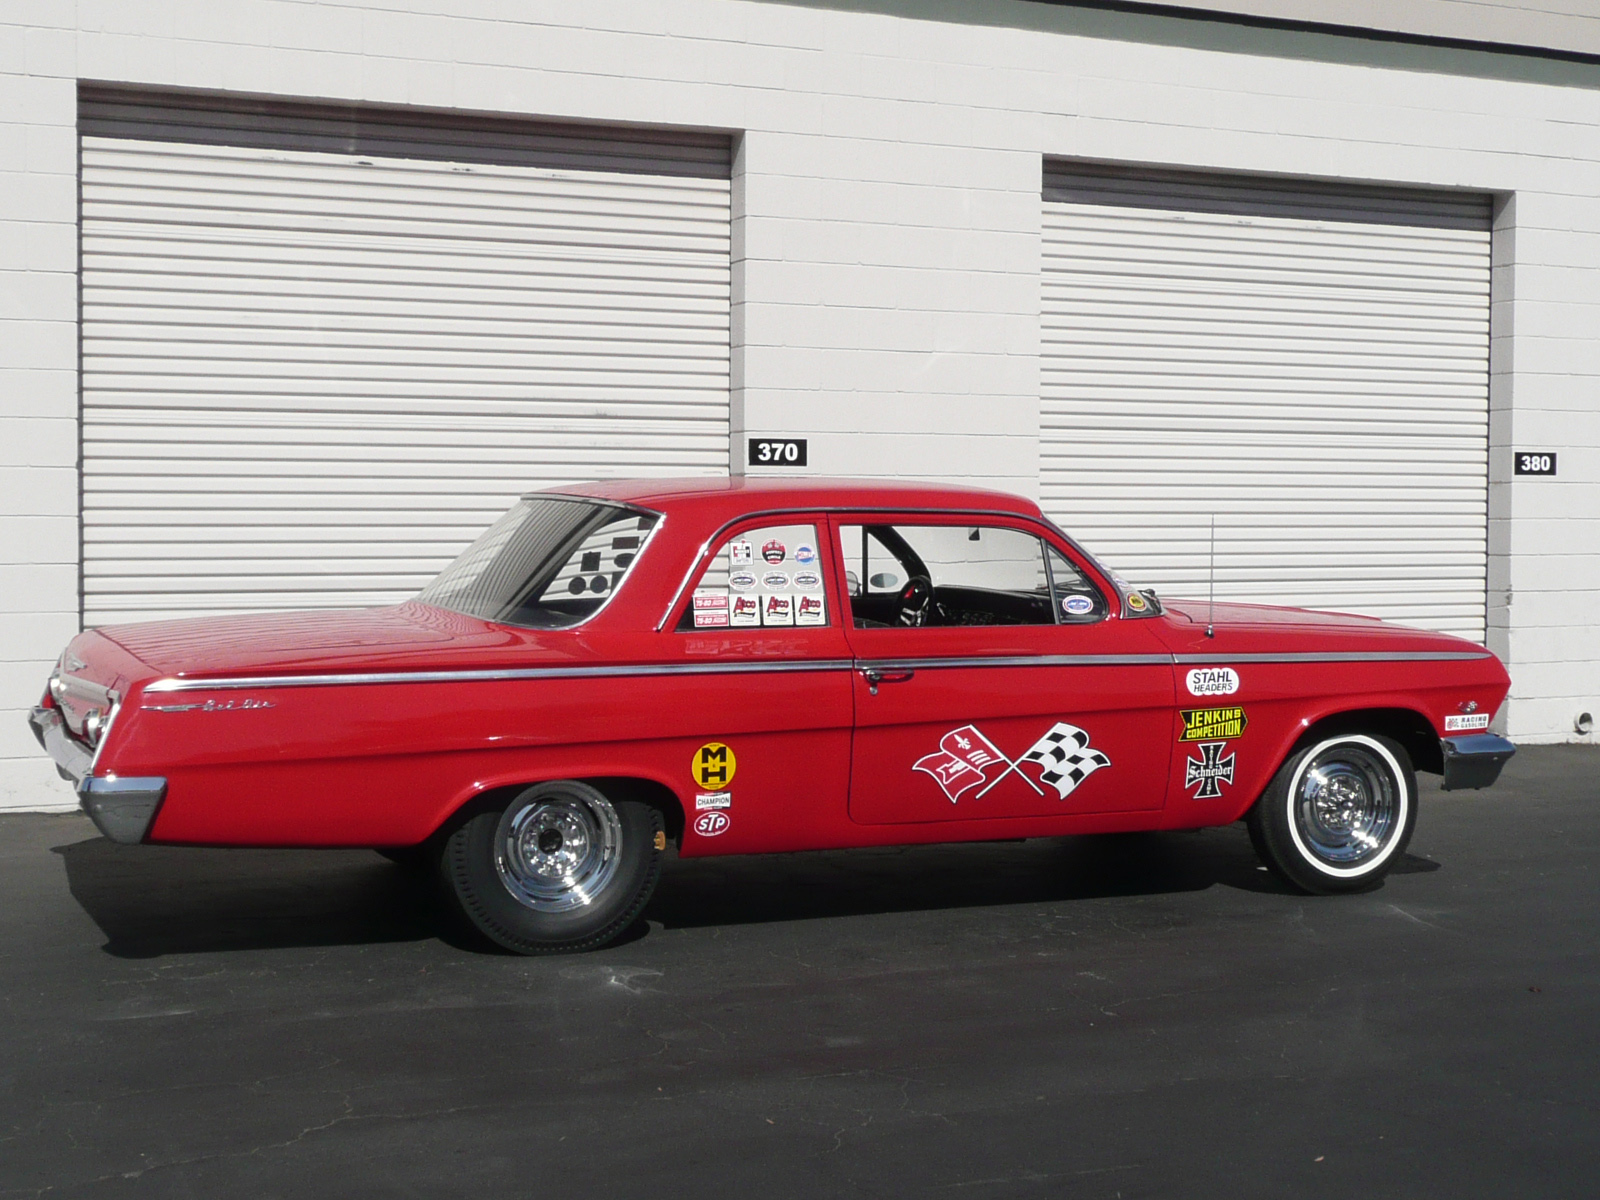 1962 CHEVROLET BEL AIR CUSTOM DRAG CAR - Rear 3/4 - 80980